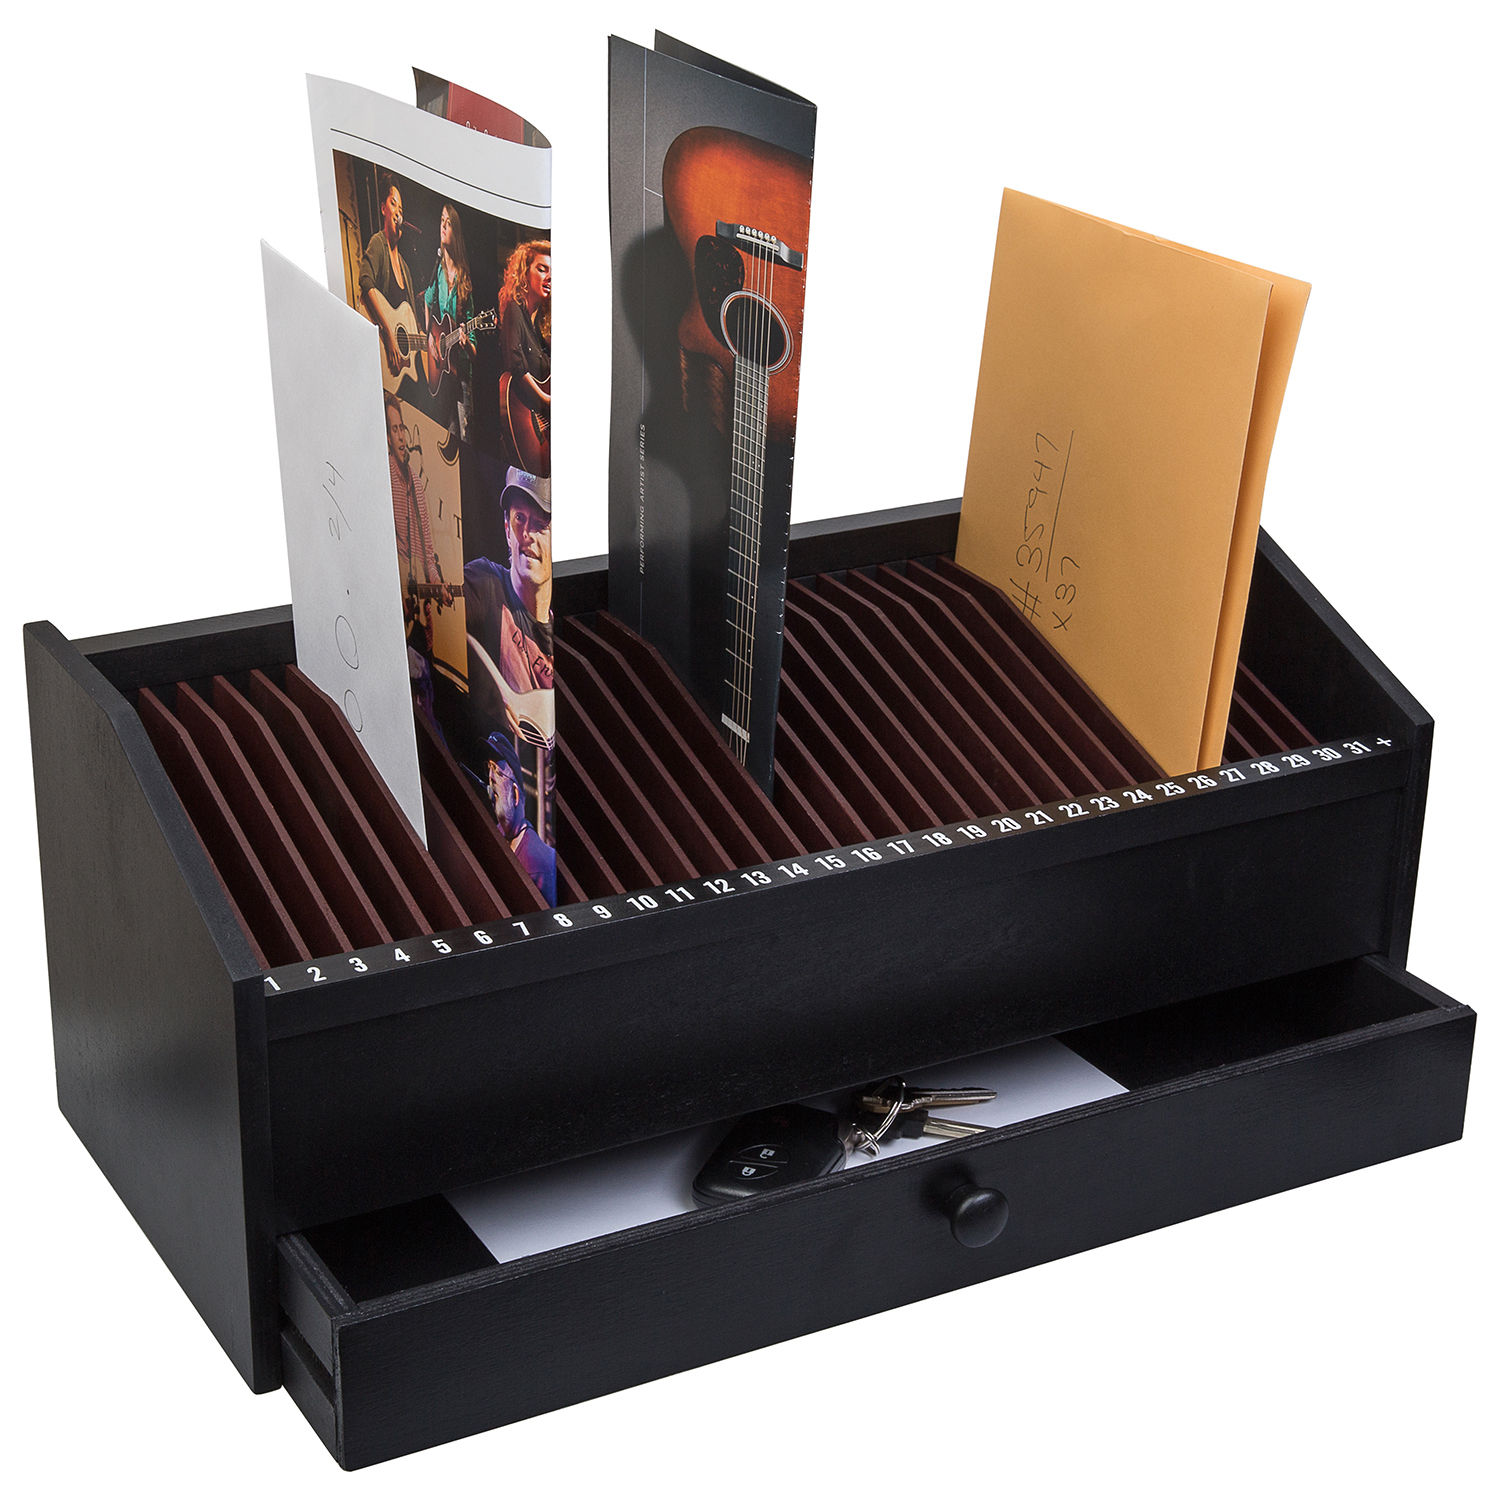 32 Slot Wooden Bill/Letter Organizer With Drawer - Black